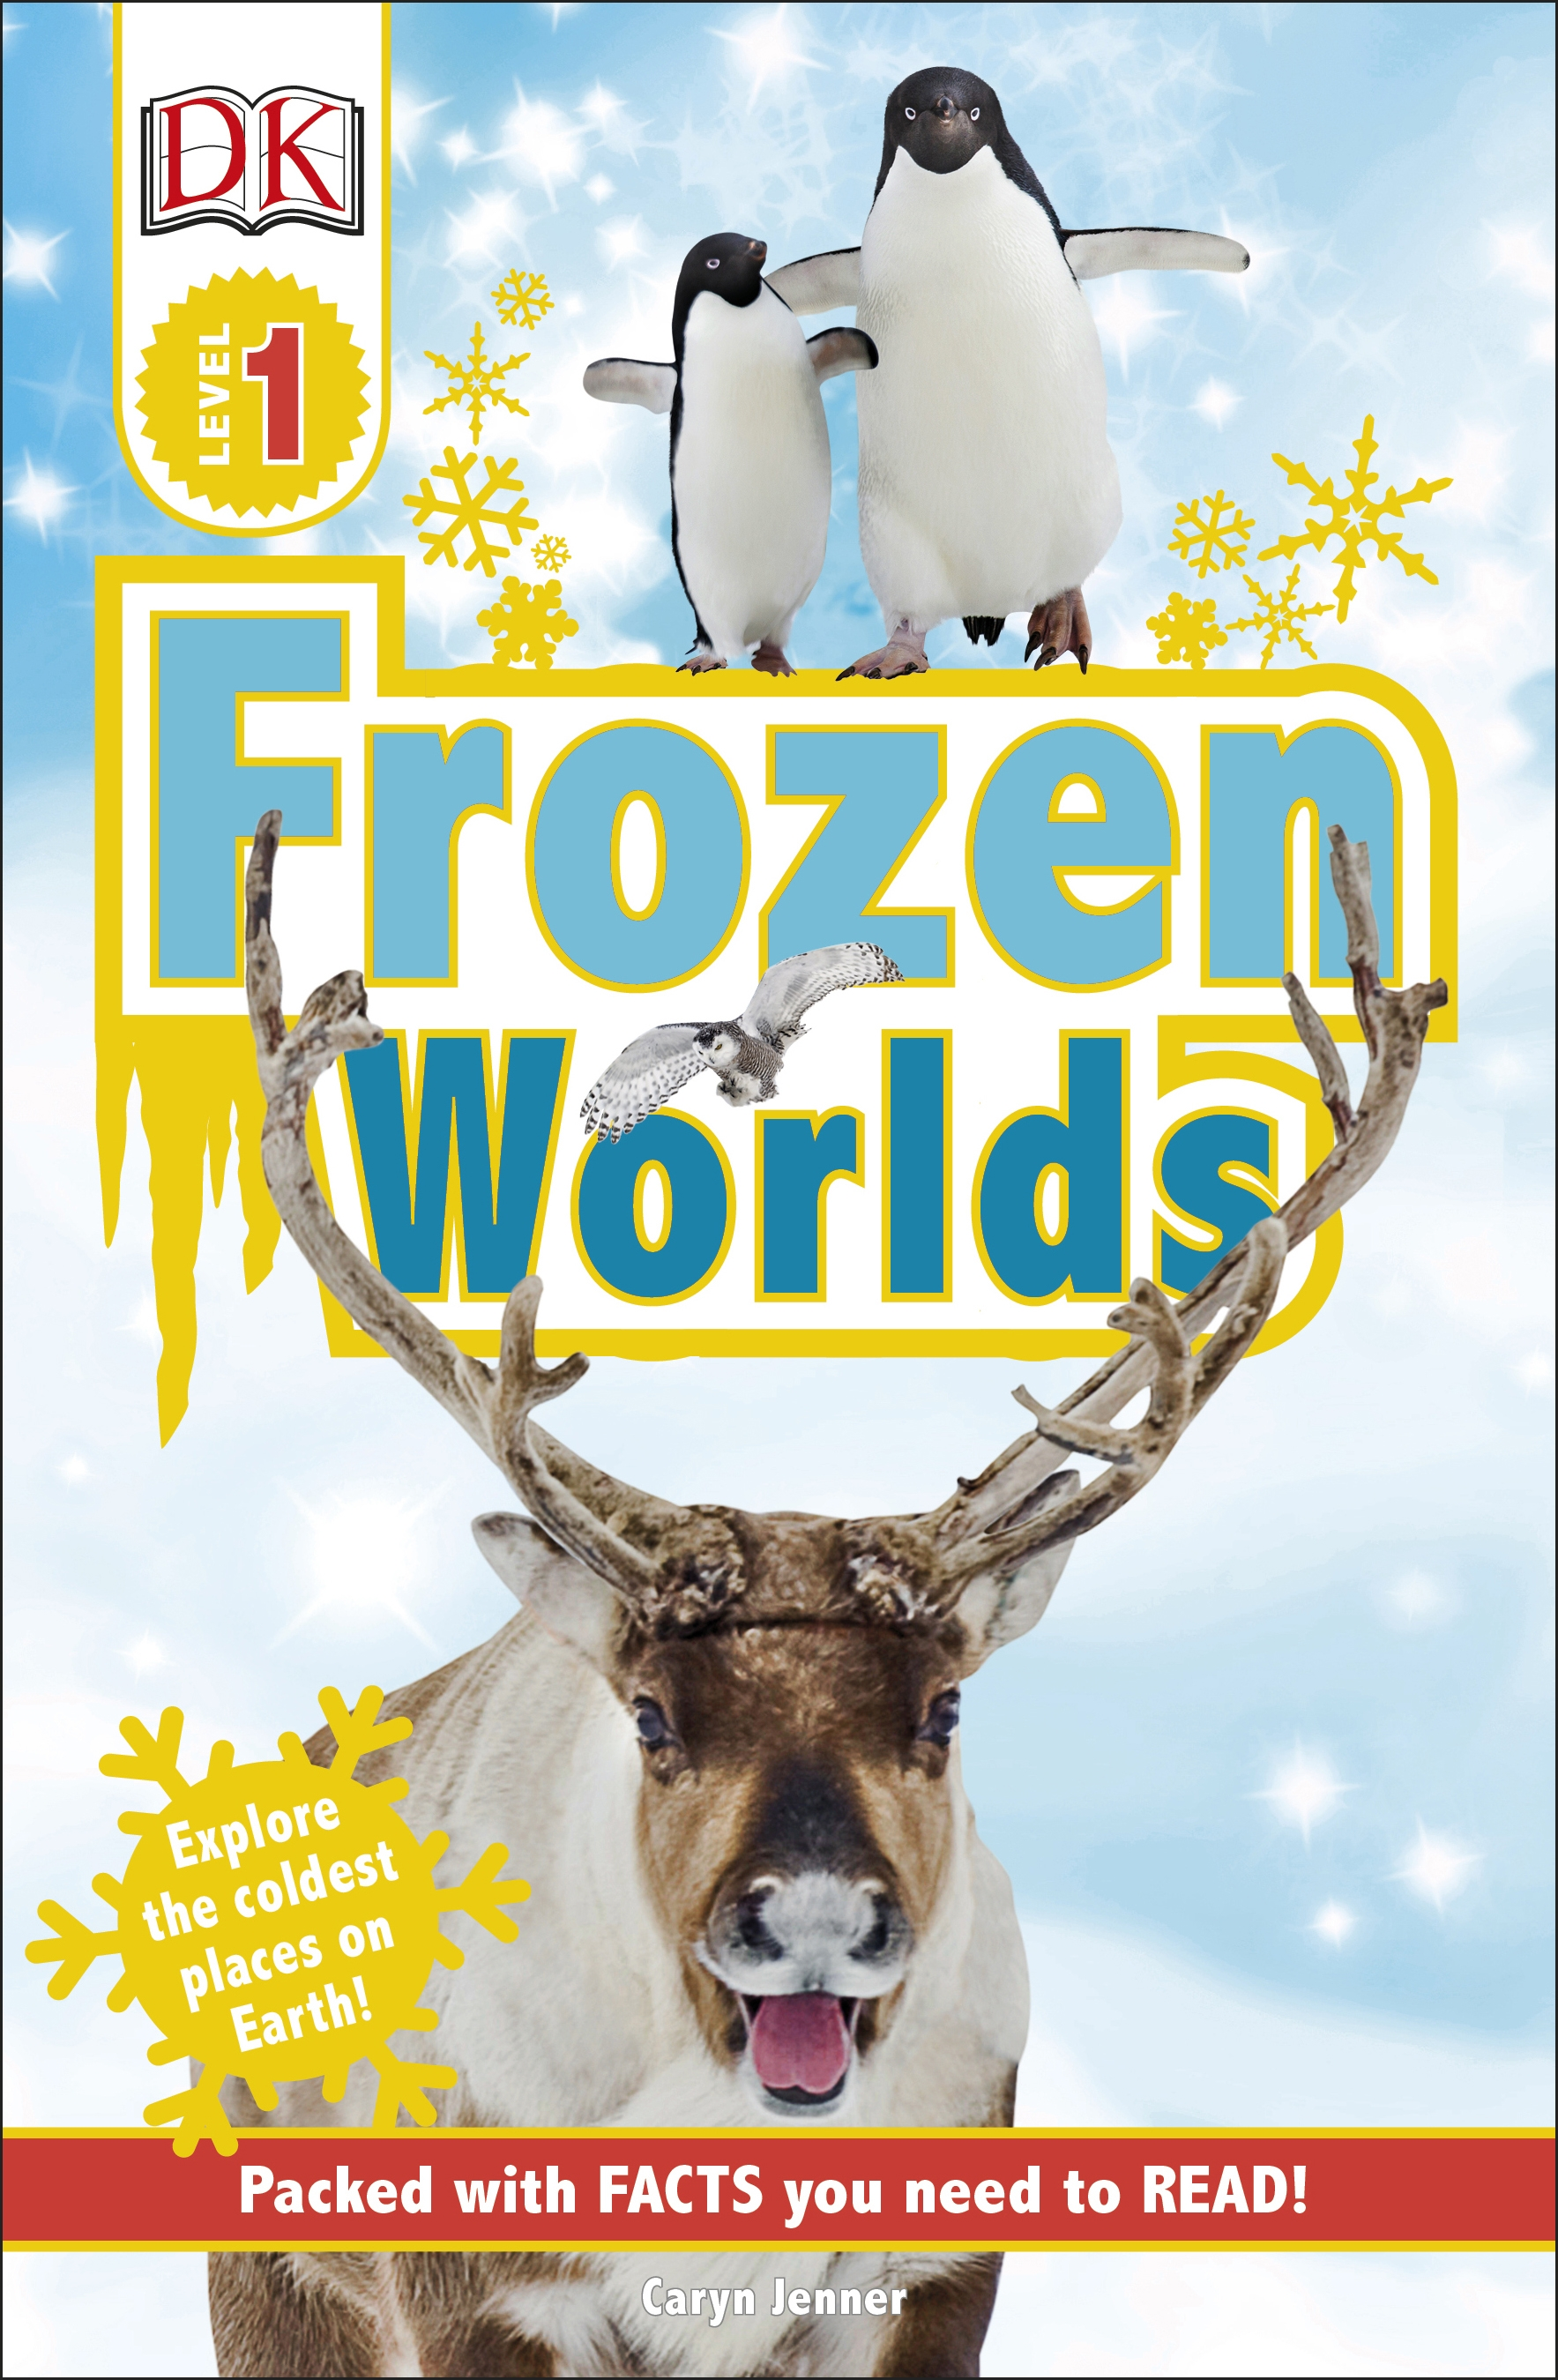 Cover Image of DK Readers L1 Frozen Worlds